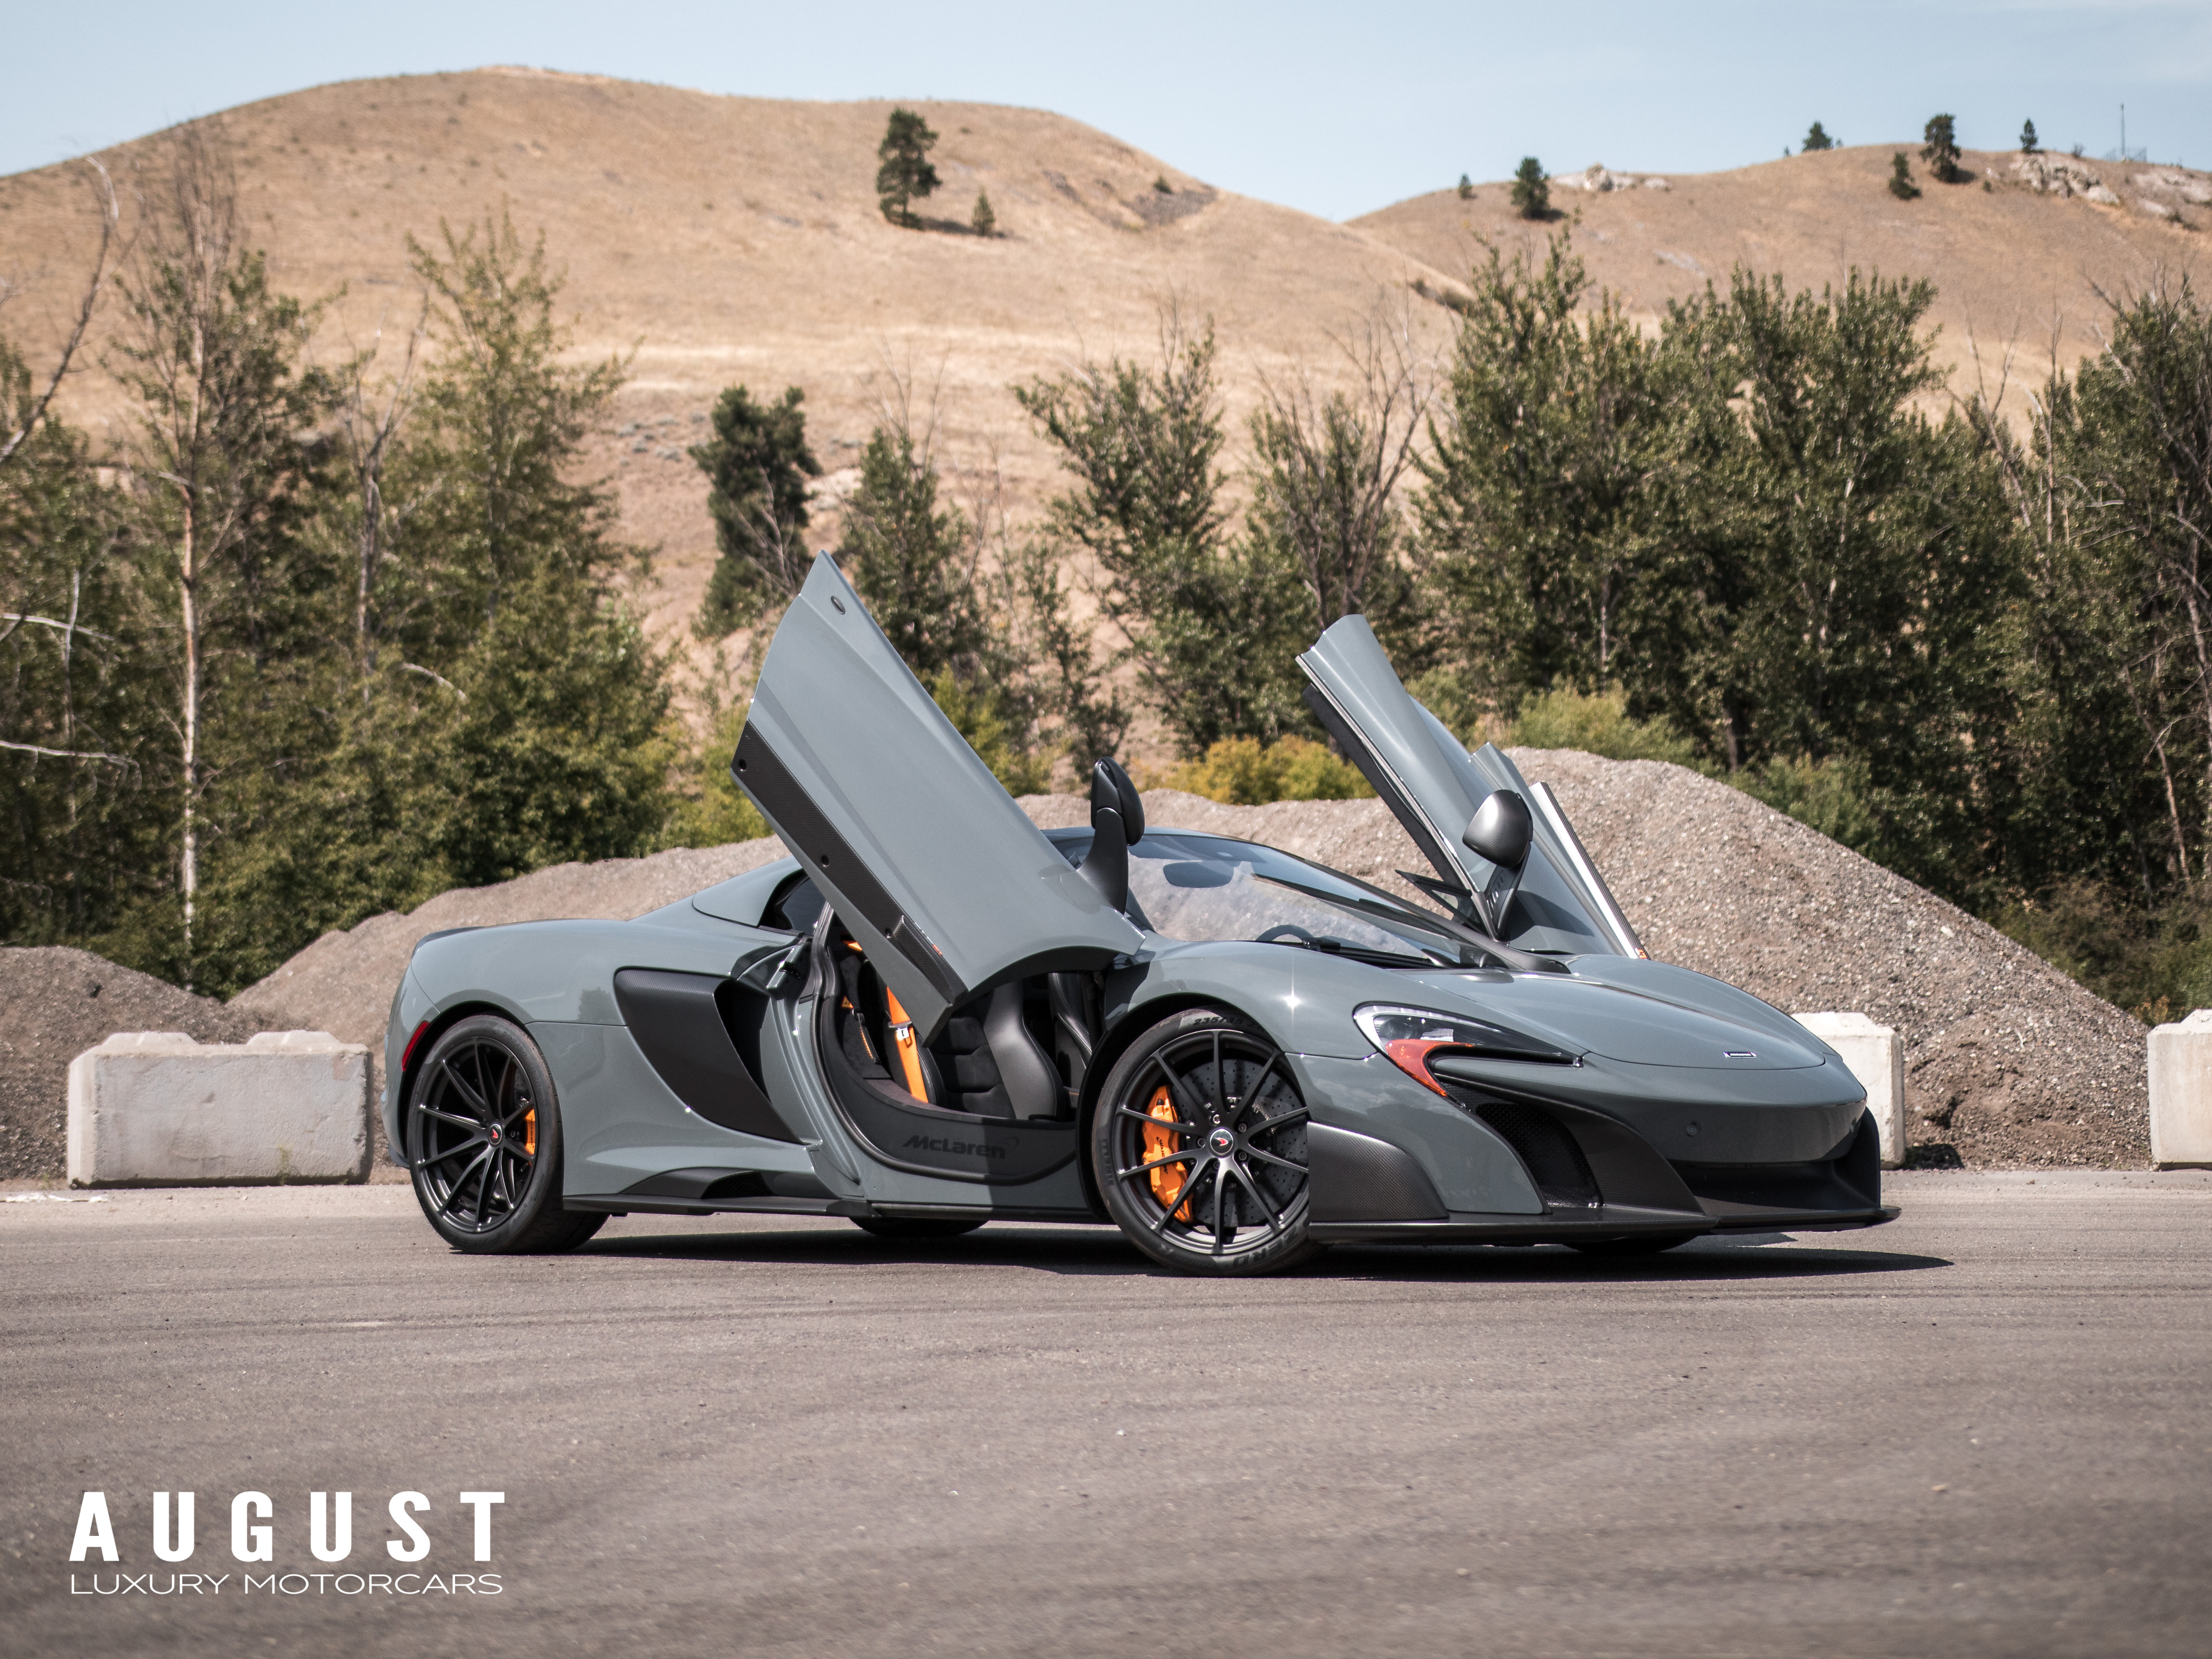 Pre-Owned 2016 McLaren 675LT Spider Highly Spec'd *Rare Color*